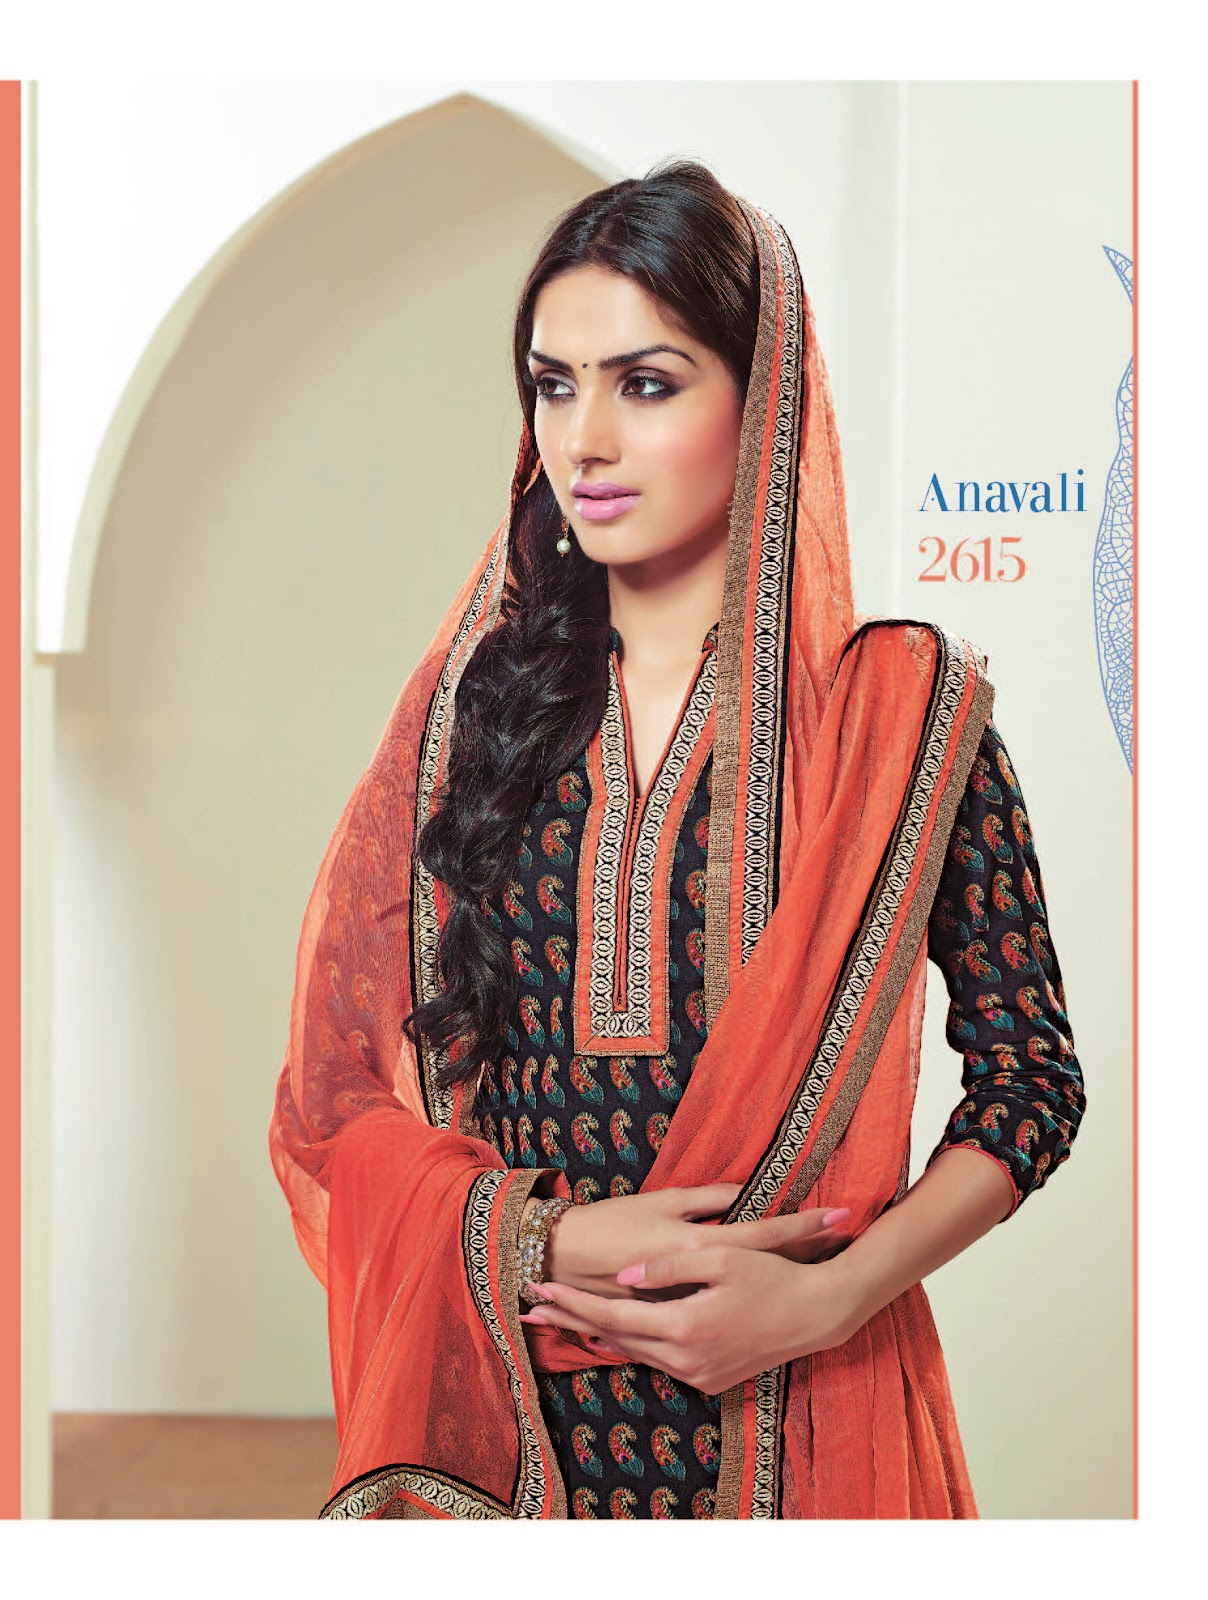 dsquare clothing ganga anavali premium cotton unstitched material posted by deepak srinivasan at 06 06